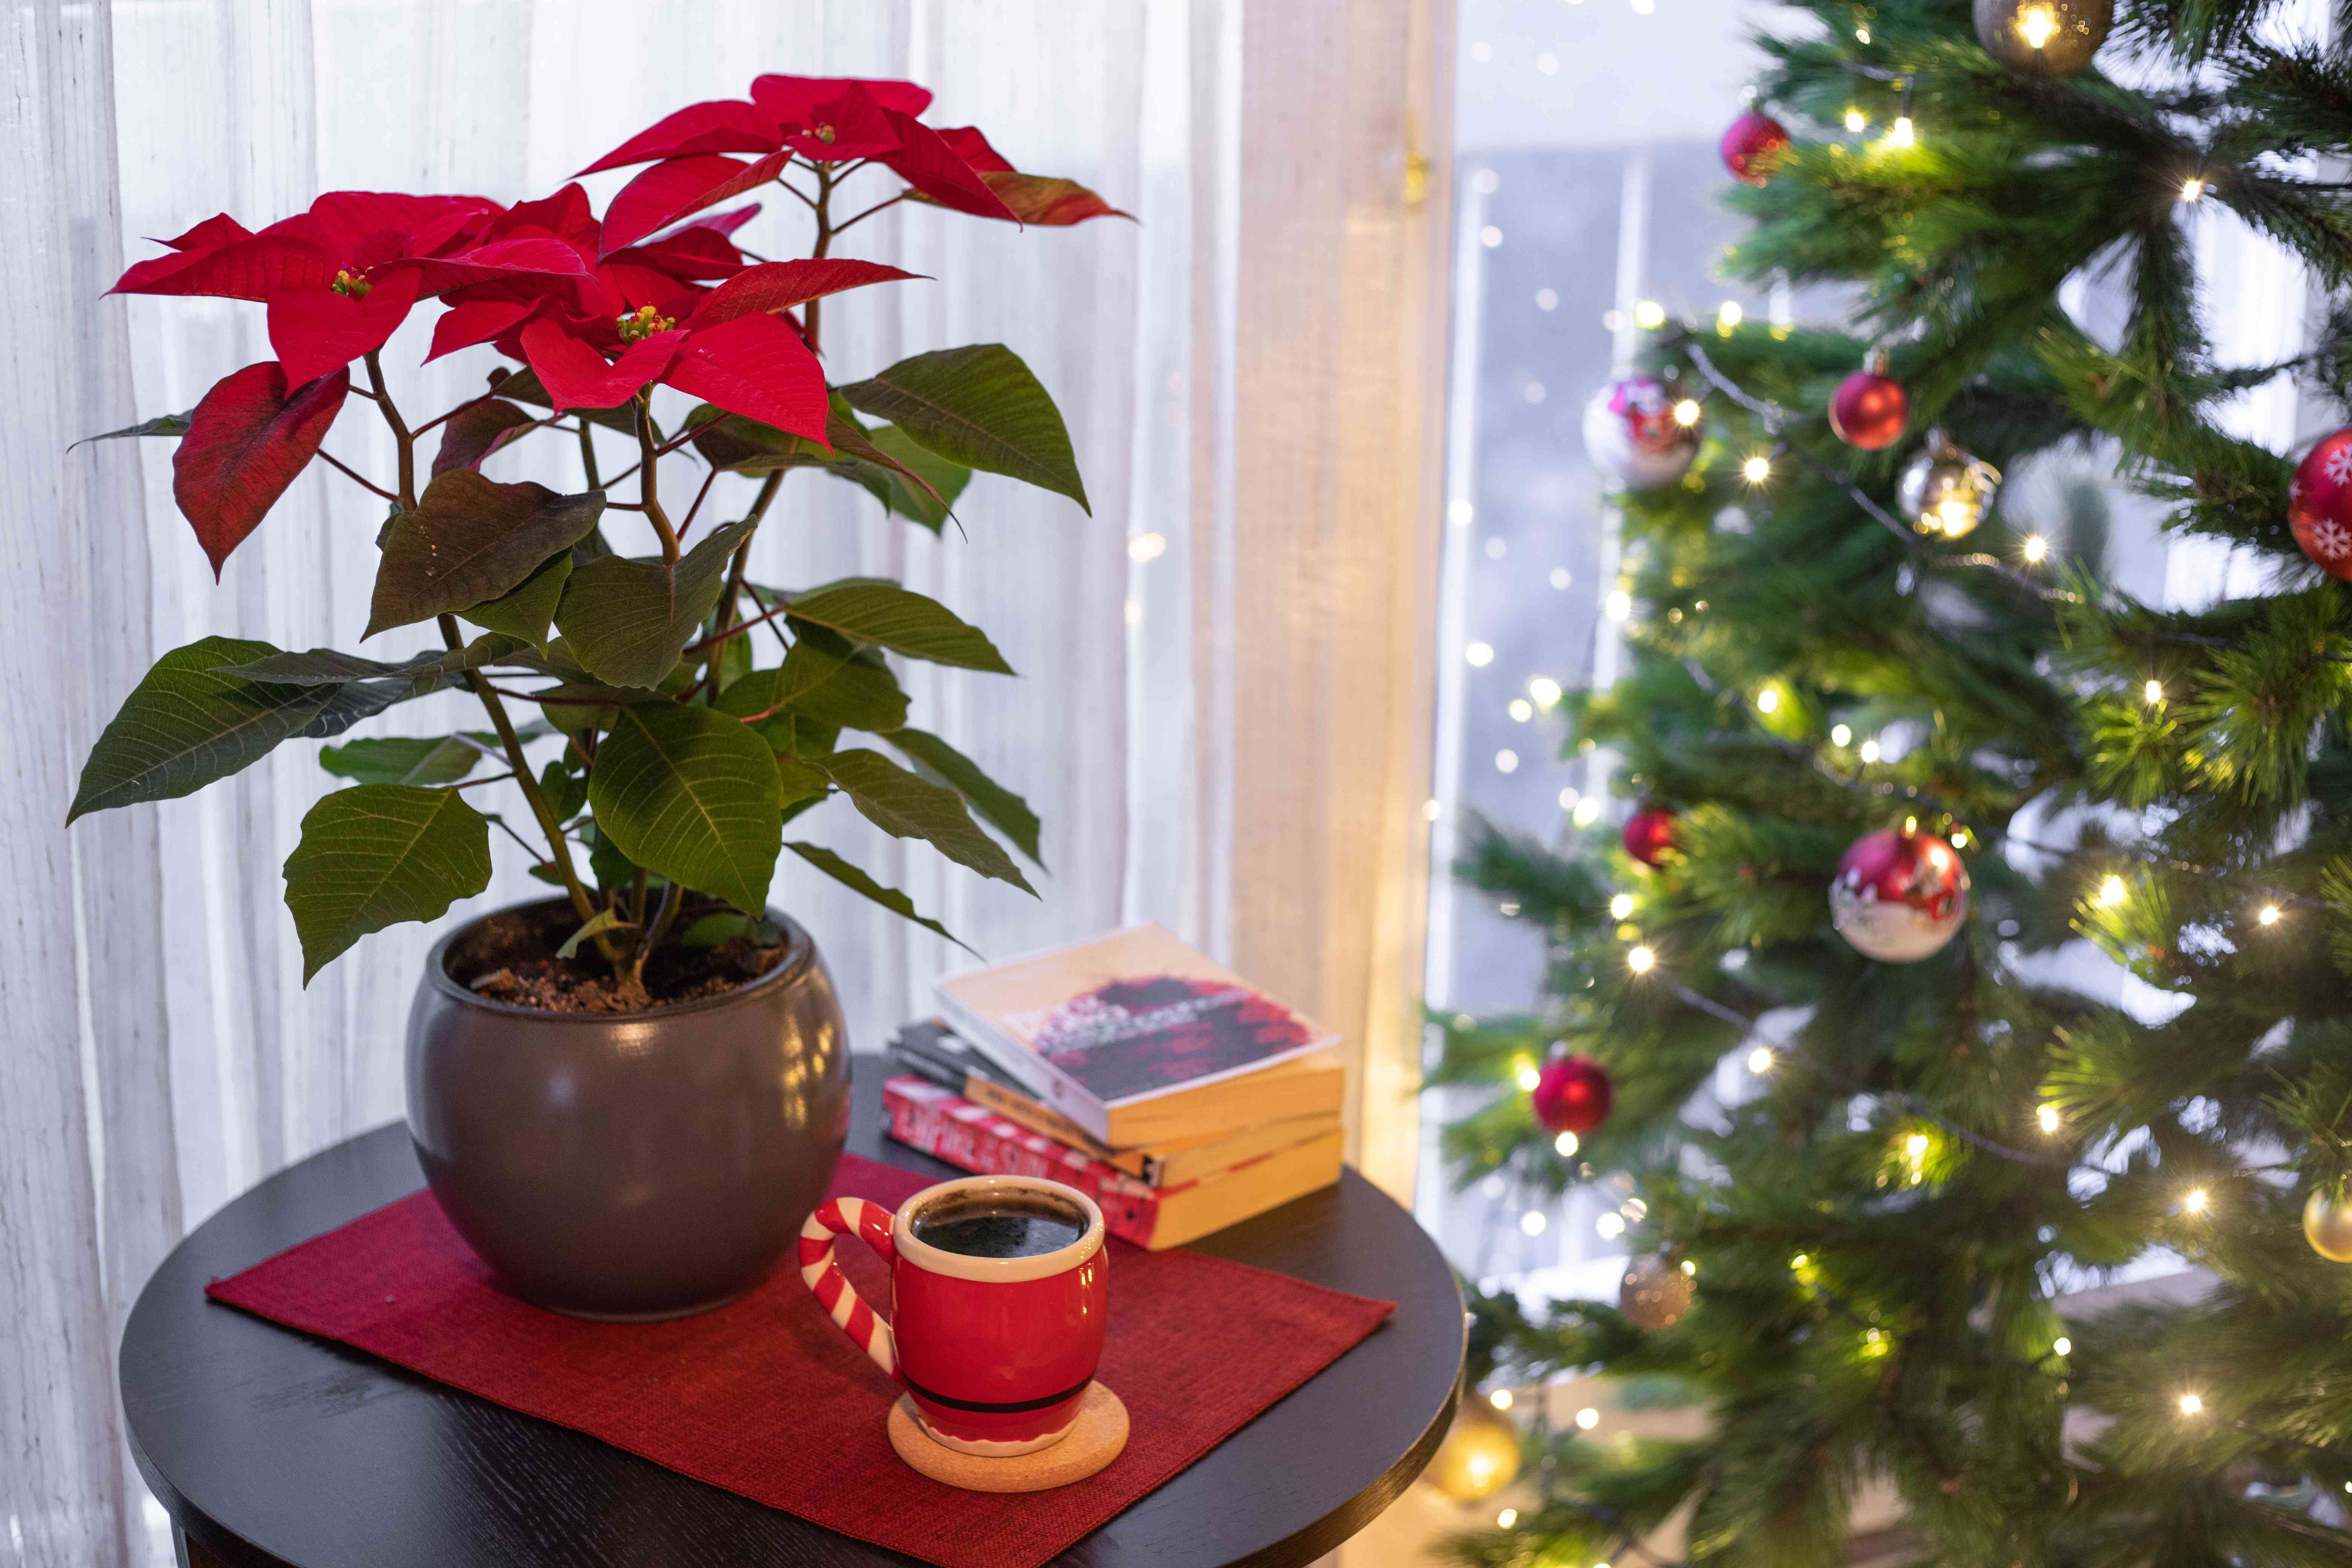 How Do I Keep Poinsettias Alive And Thriving For Next Christmas